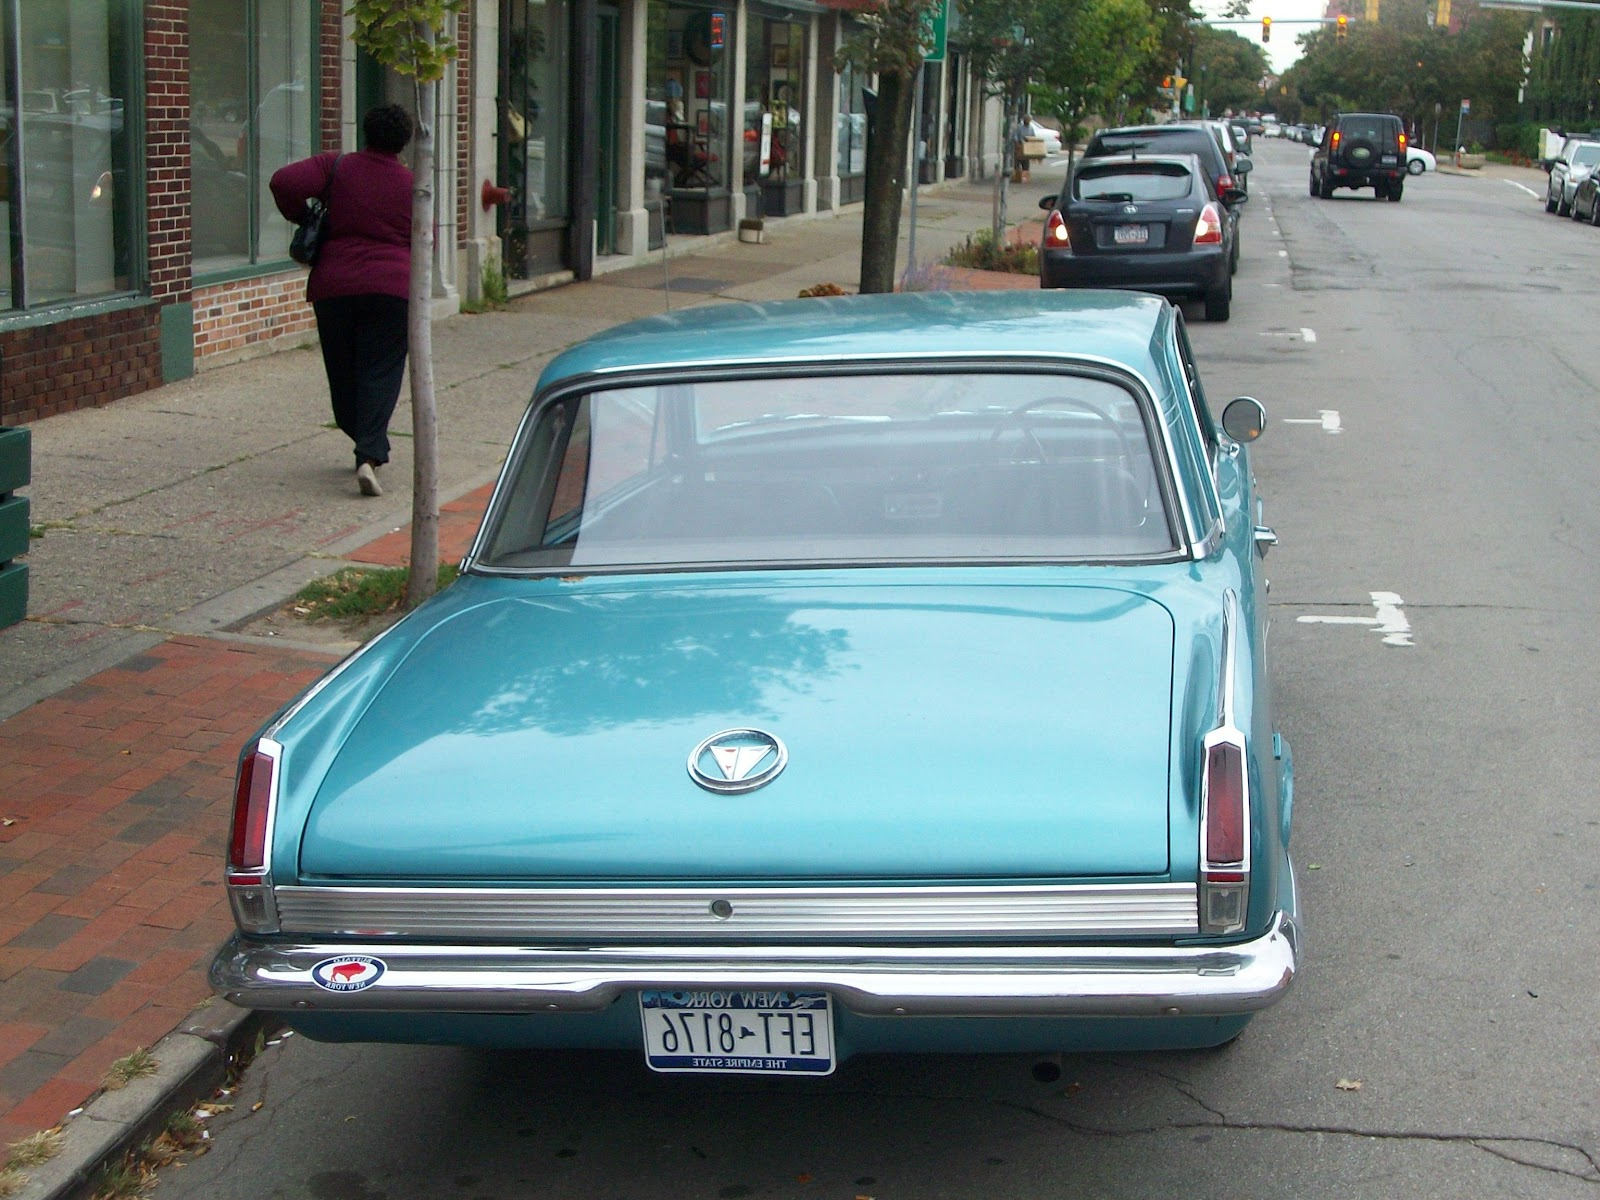 64 Valiant Signet 200 :: driver seat needs repair picture by imperialcruiser